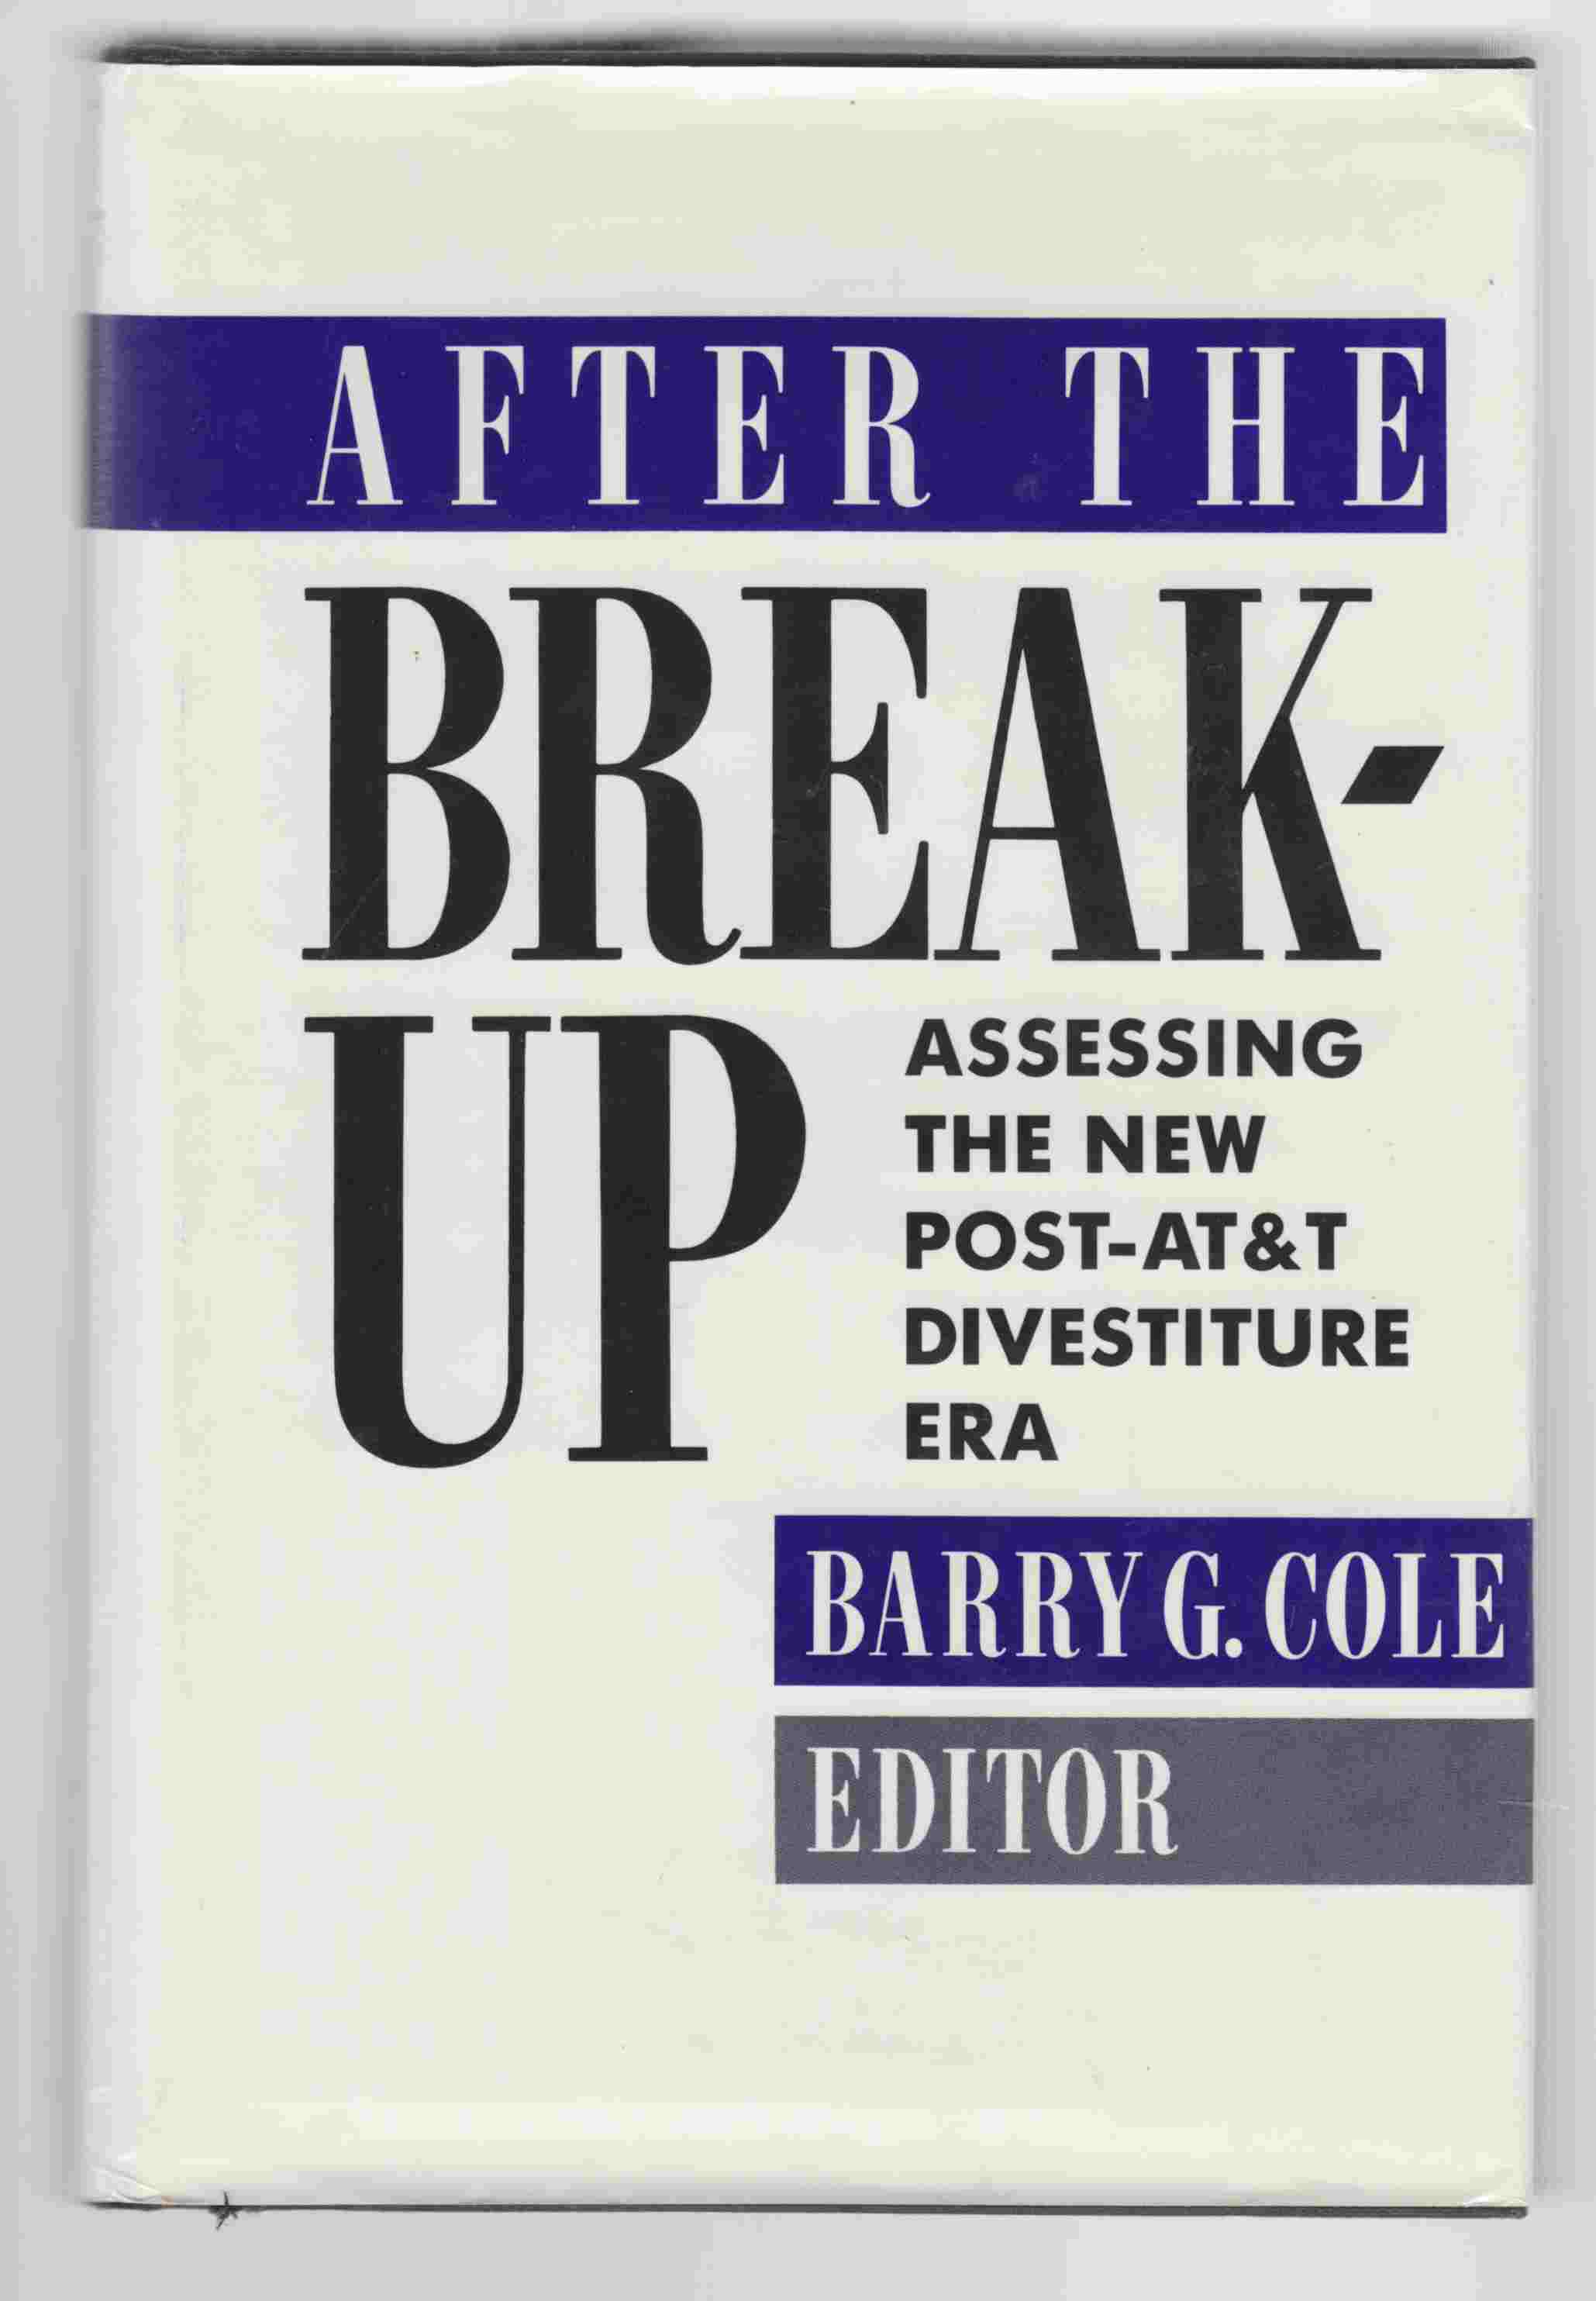 Image for After the Breakup: Assessing the New Post-AT&T Divestiture Era